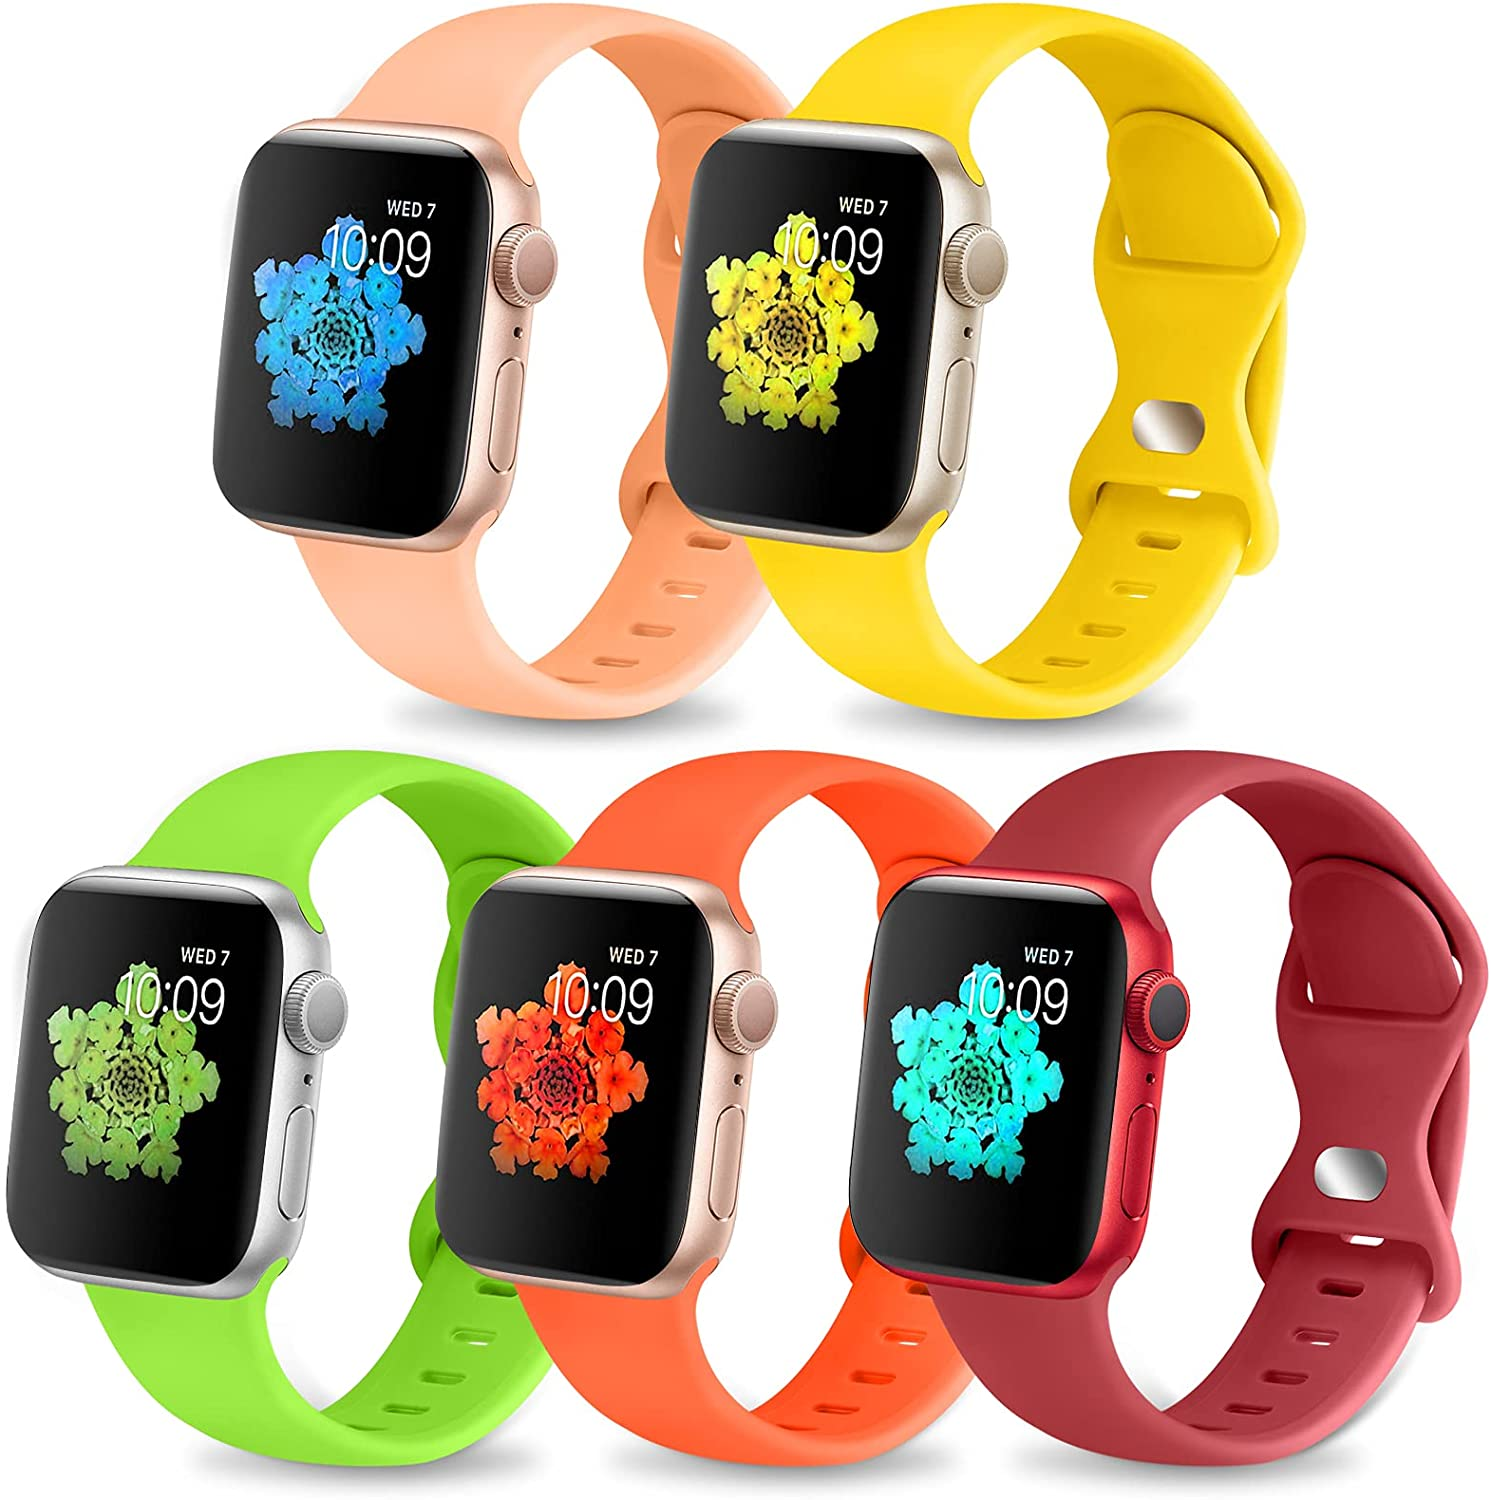 Coolgance 5 Pack Bands Compatible with Apple Watch Bands 41mm 45mm 42mm 44mm 38mm 40mm for Women Men, Soft Silicone Sport Wristbands Replacement Strap with Classic Clasp for iWatch Series SE 7 6 5 4 3 2 1